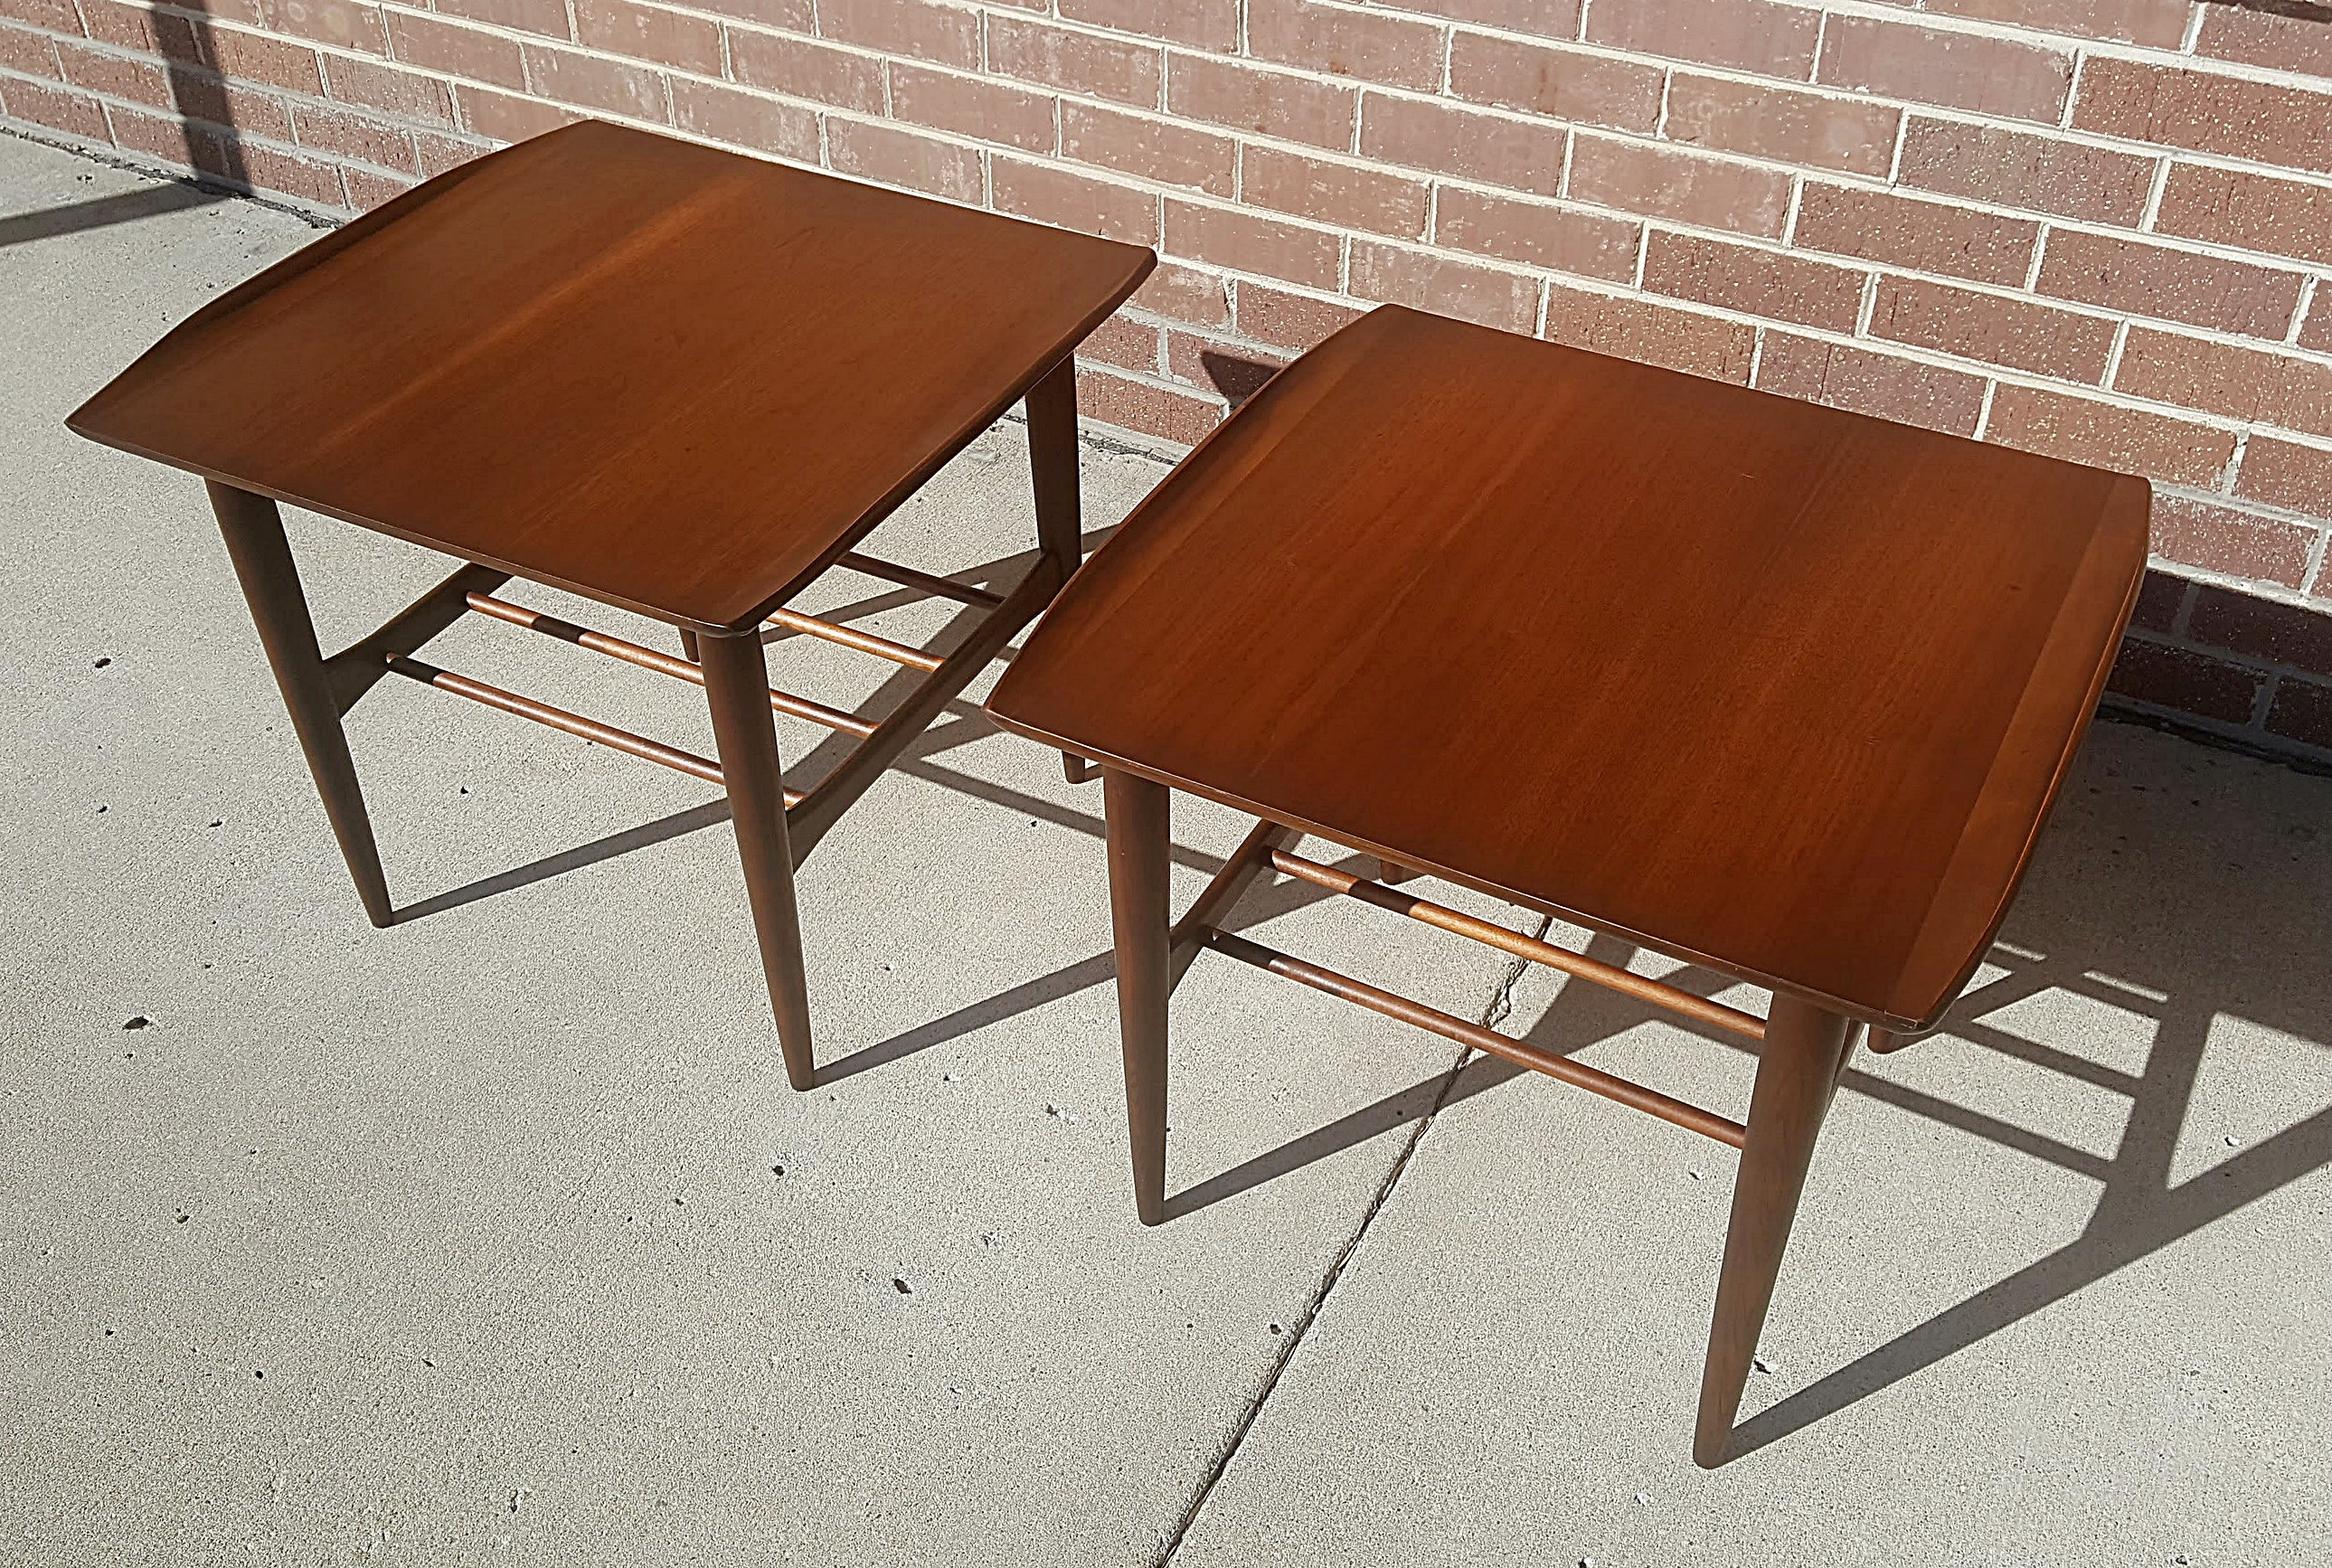 Mid Century Modern Furniture & Home Decor Kansas City